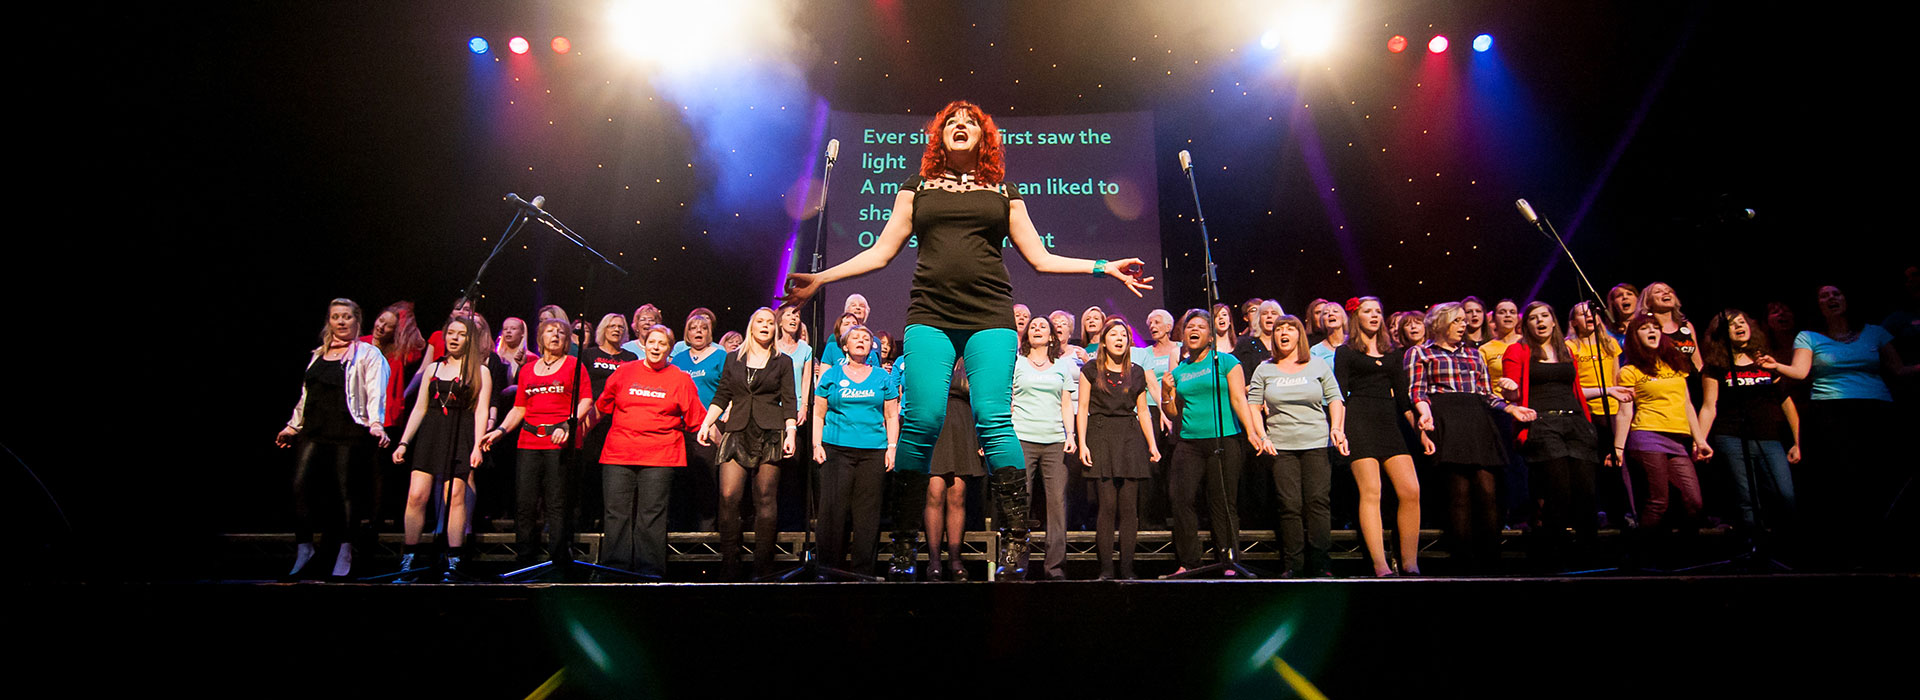 Choiroke 2013 choir festival at The Hawth, Crawley